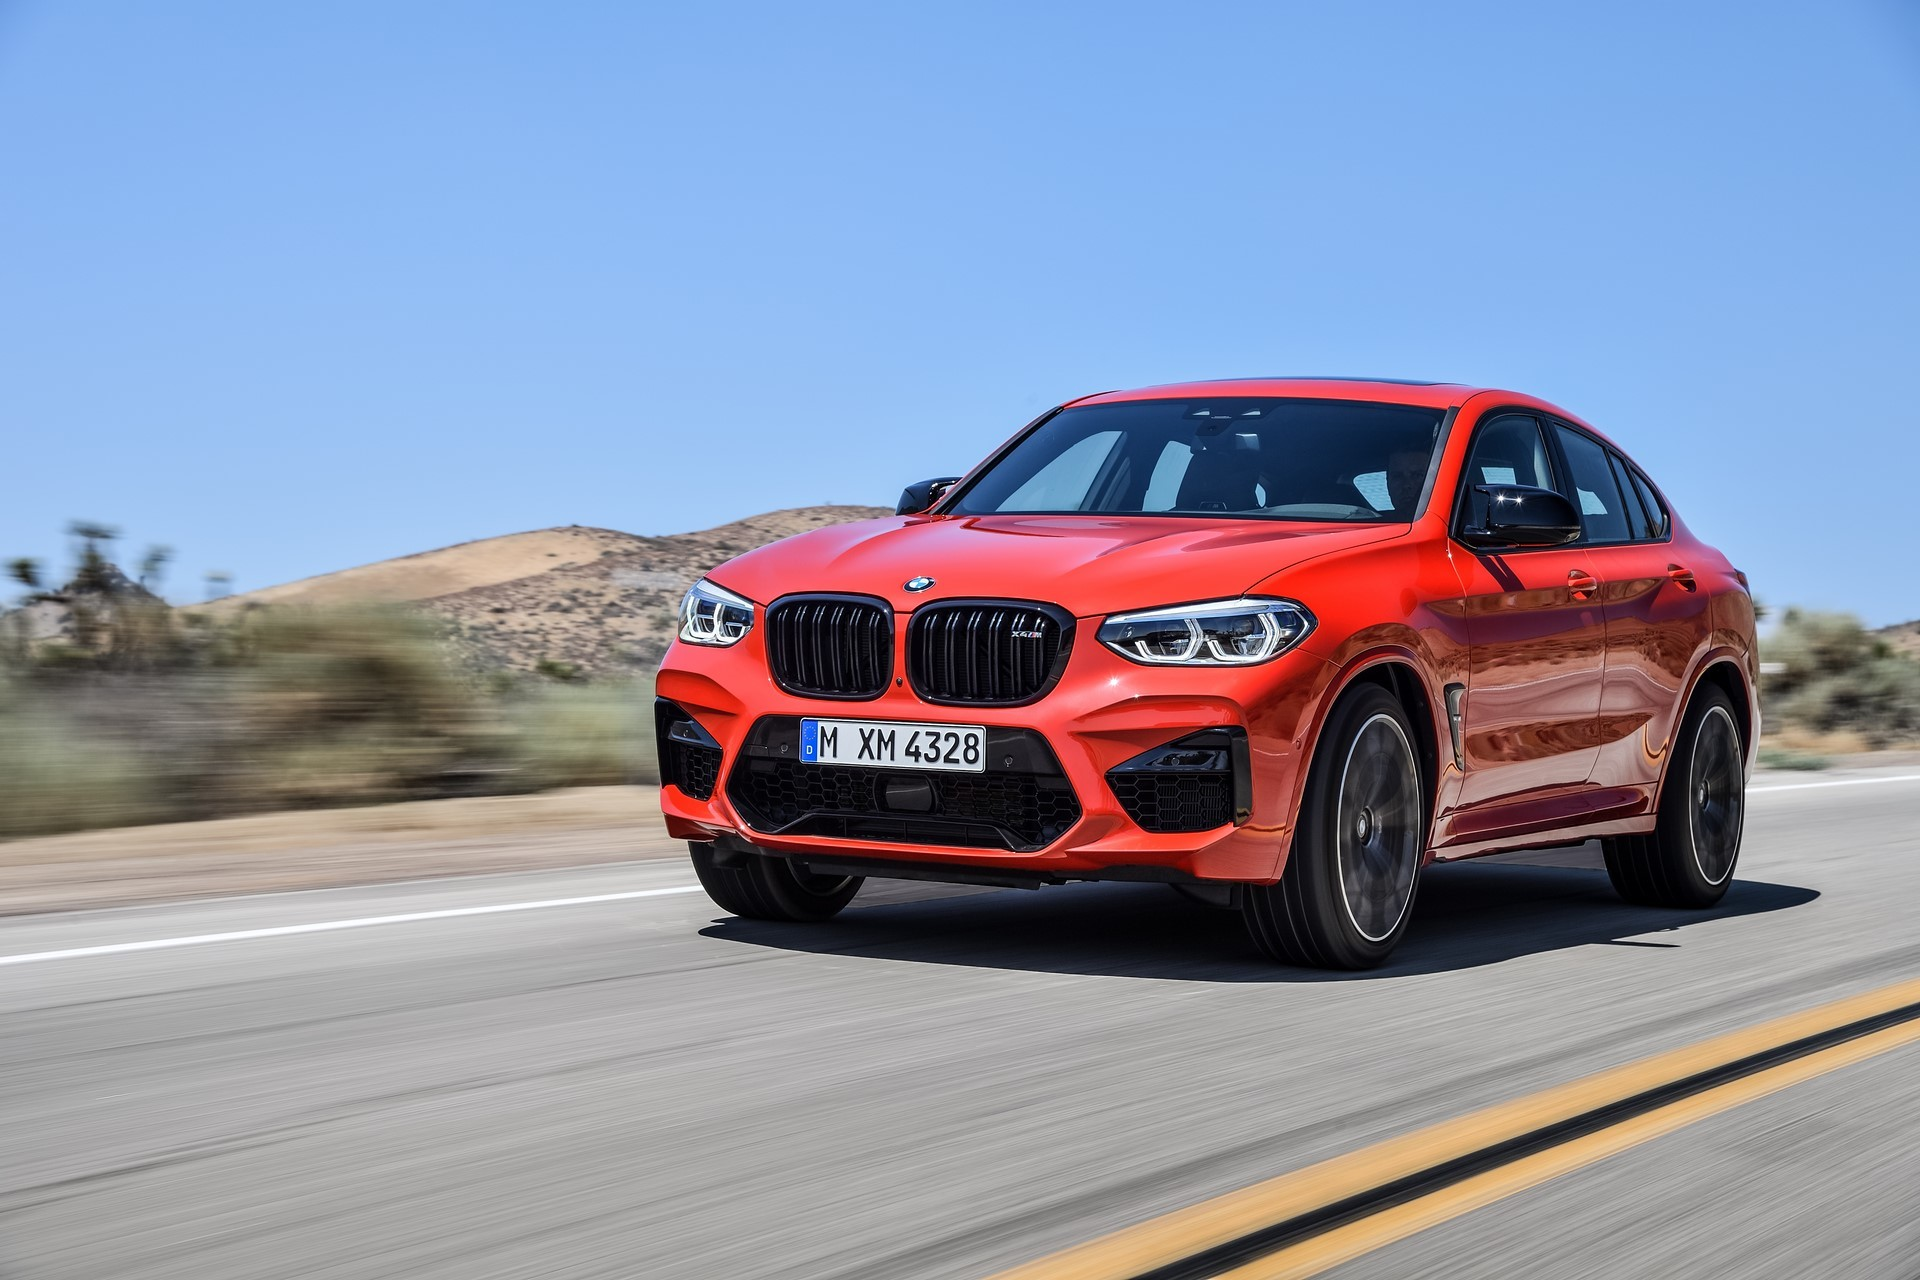 BMW X3 M and X4 M 2019 (81)